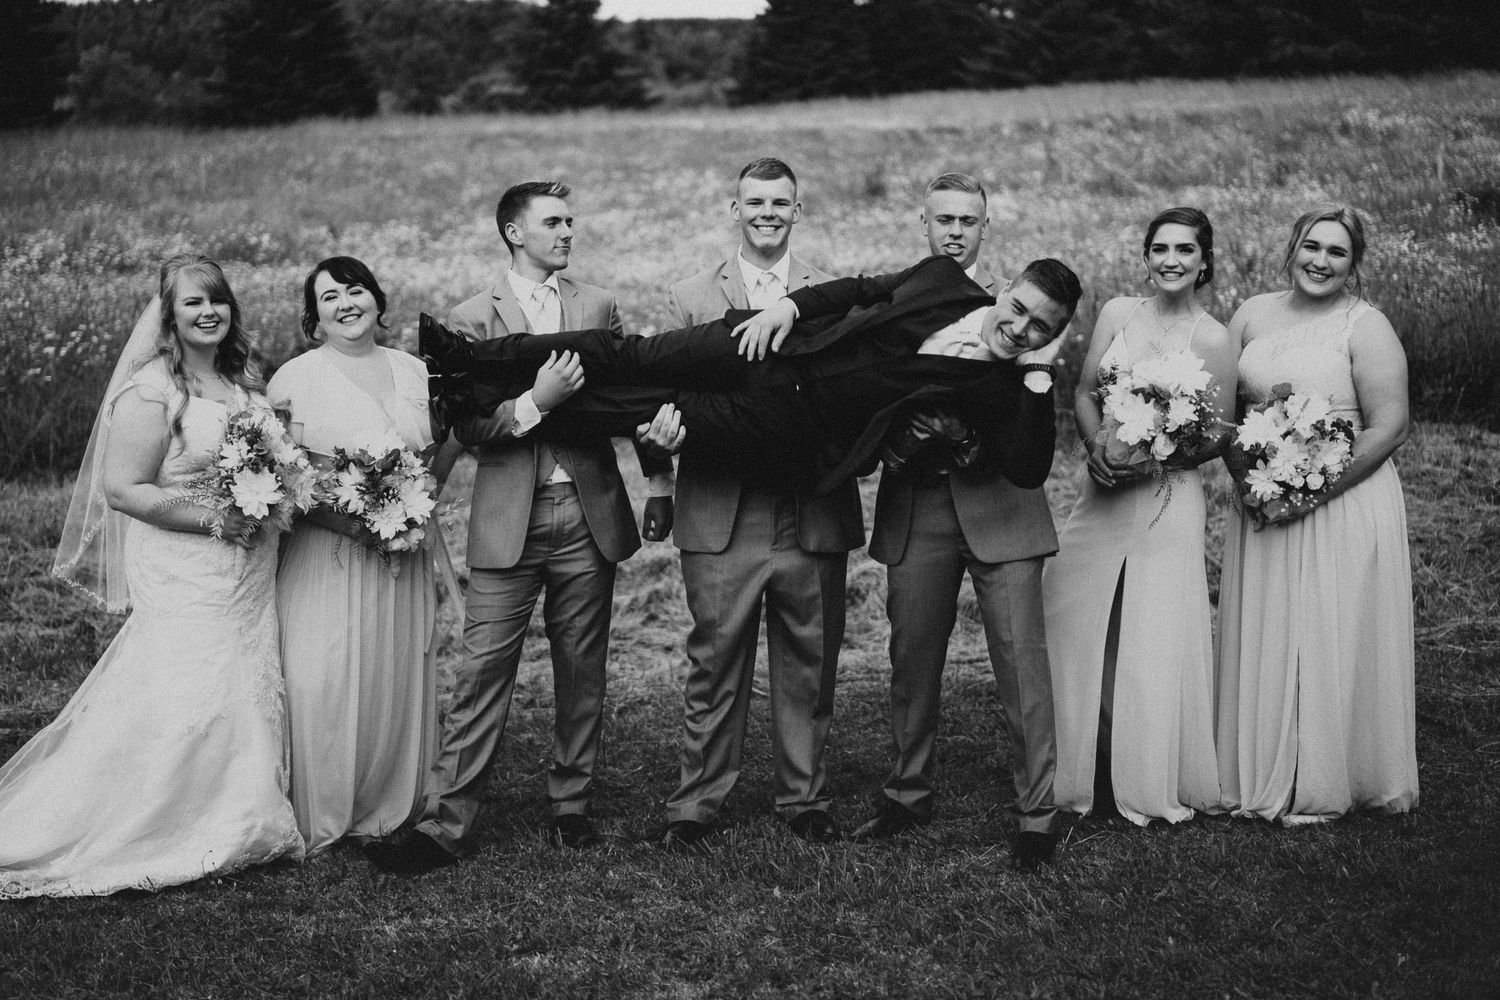 Black and white image of a wedding party holding up the groom